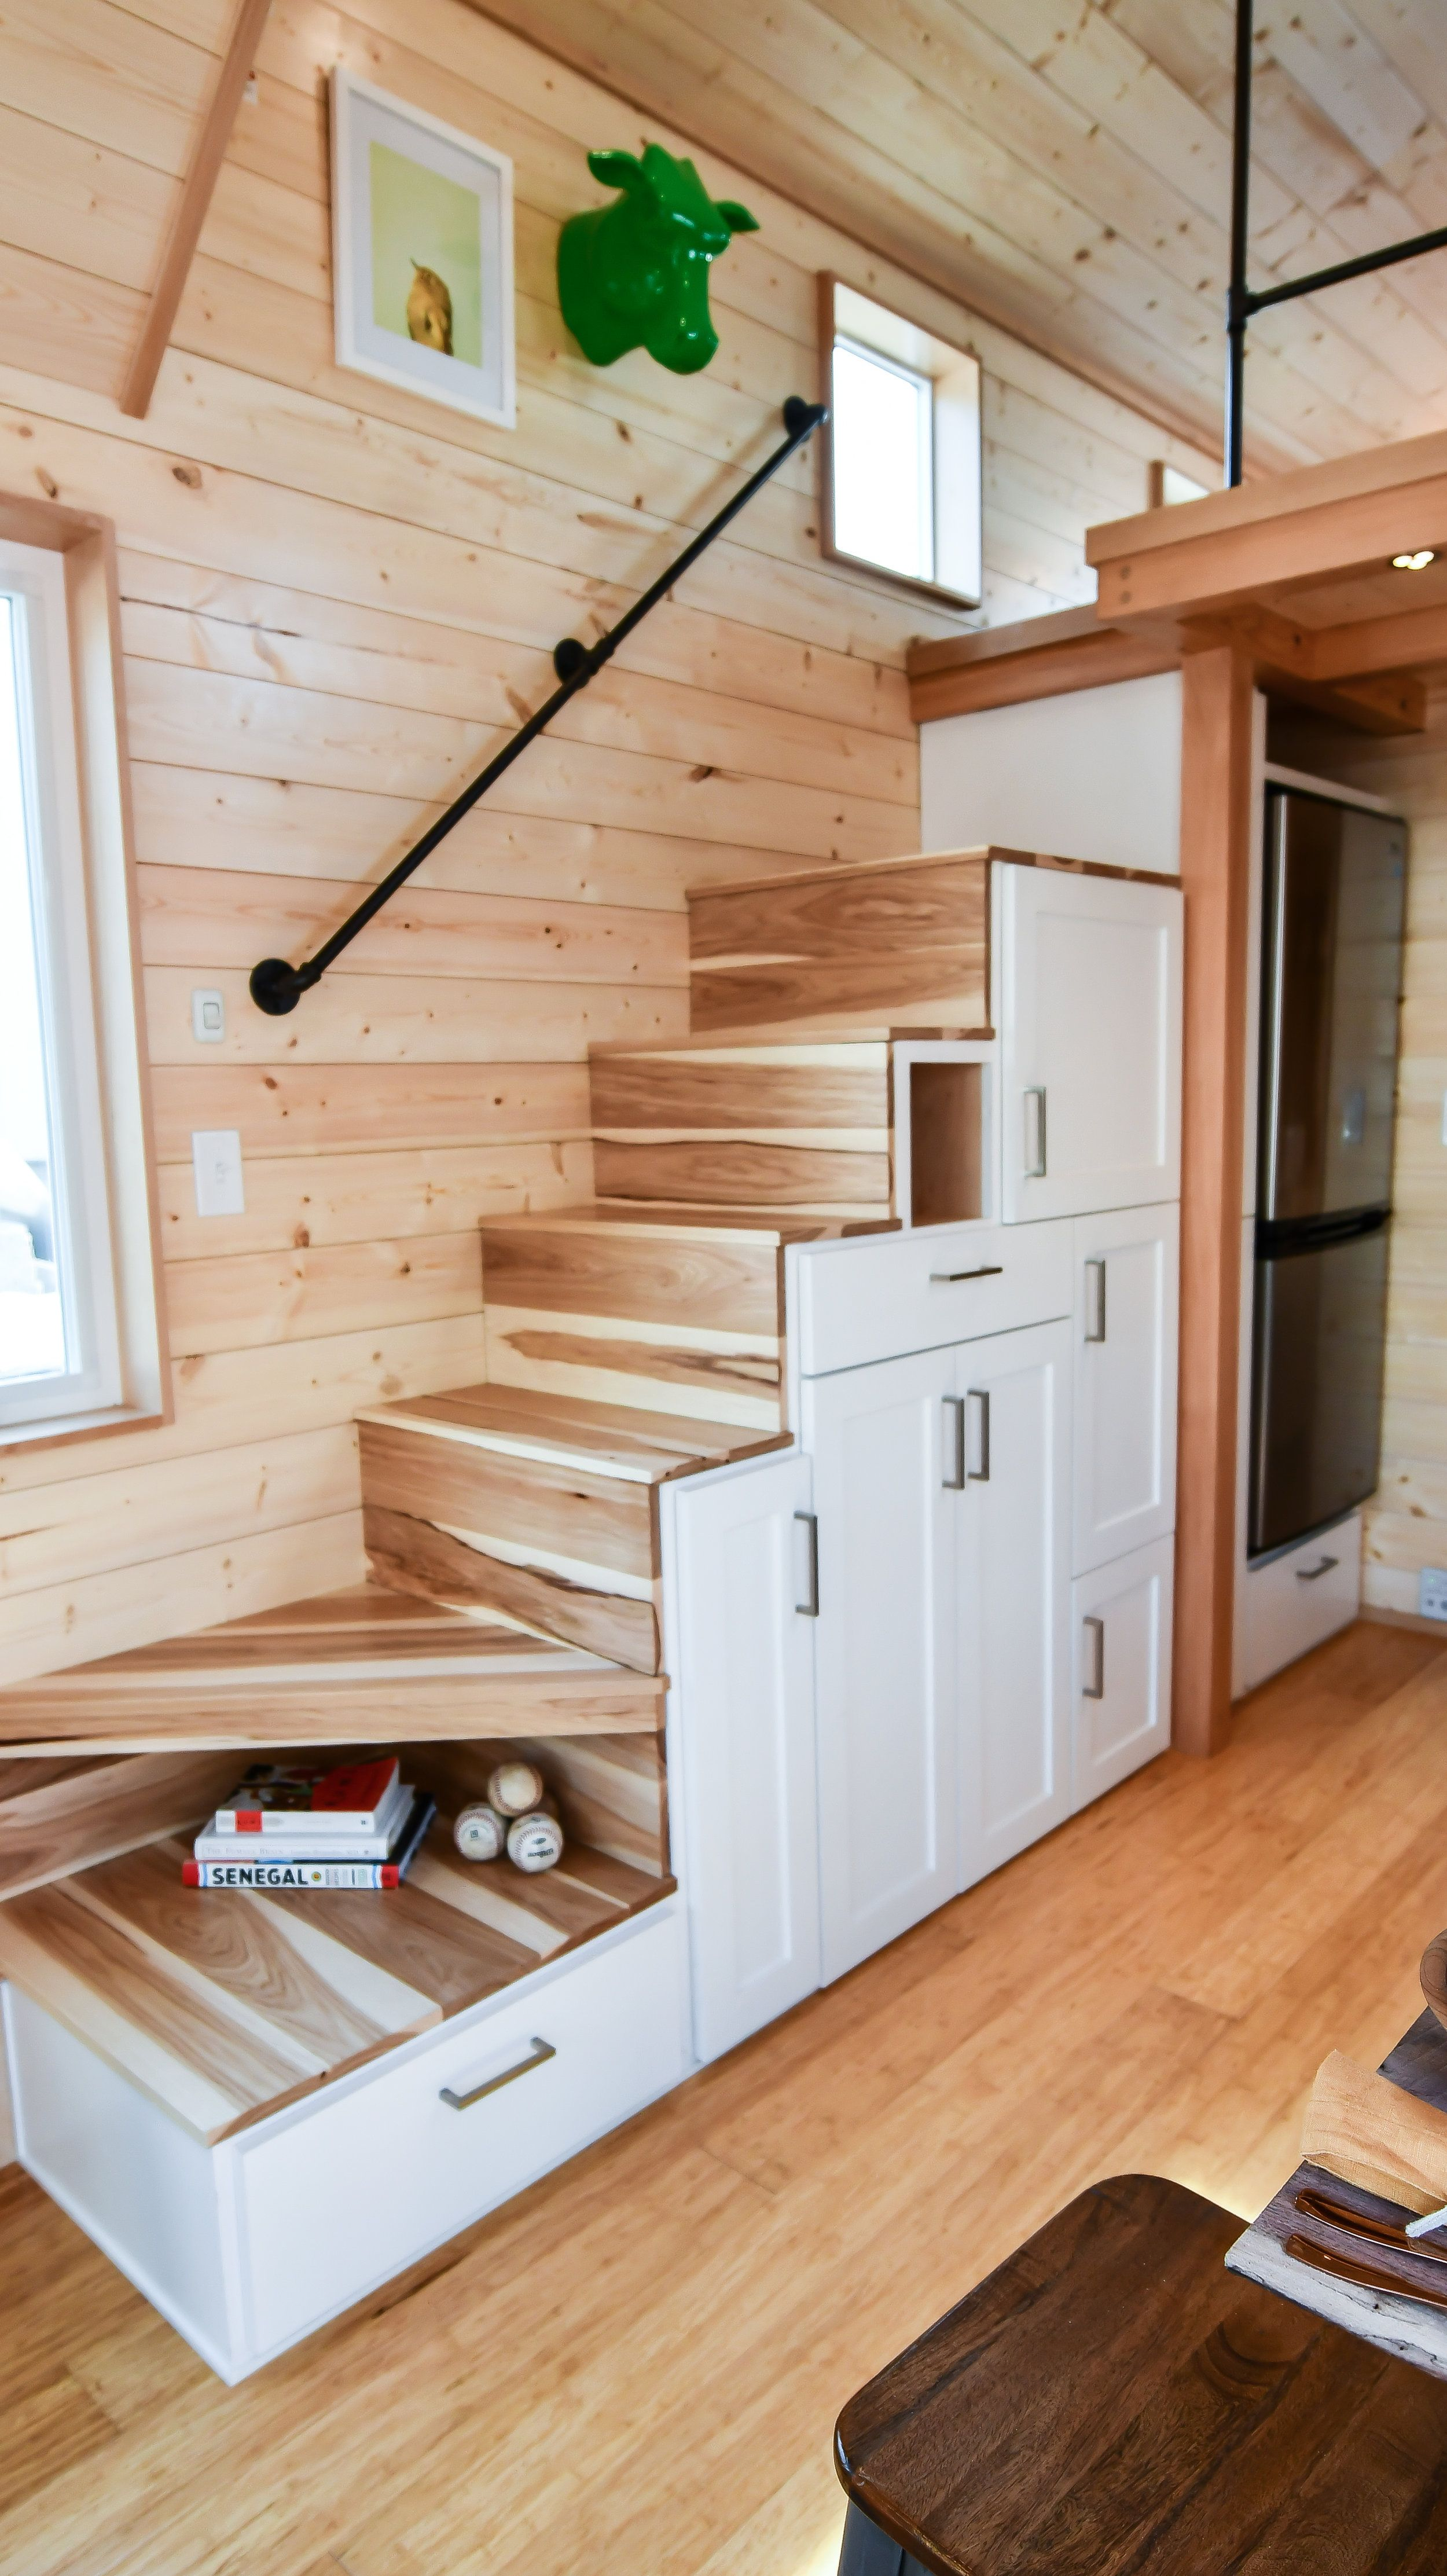 Pin By C Rawlings On Matchbox Living Tiny House Stairs Attic Renovation Attic Apartment